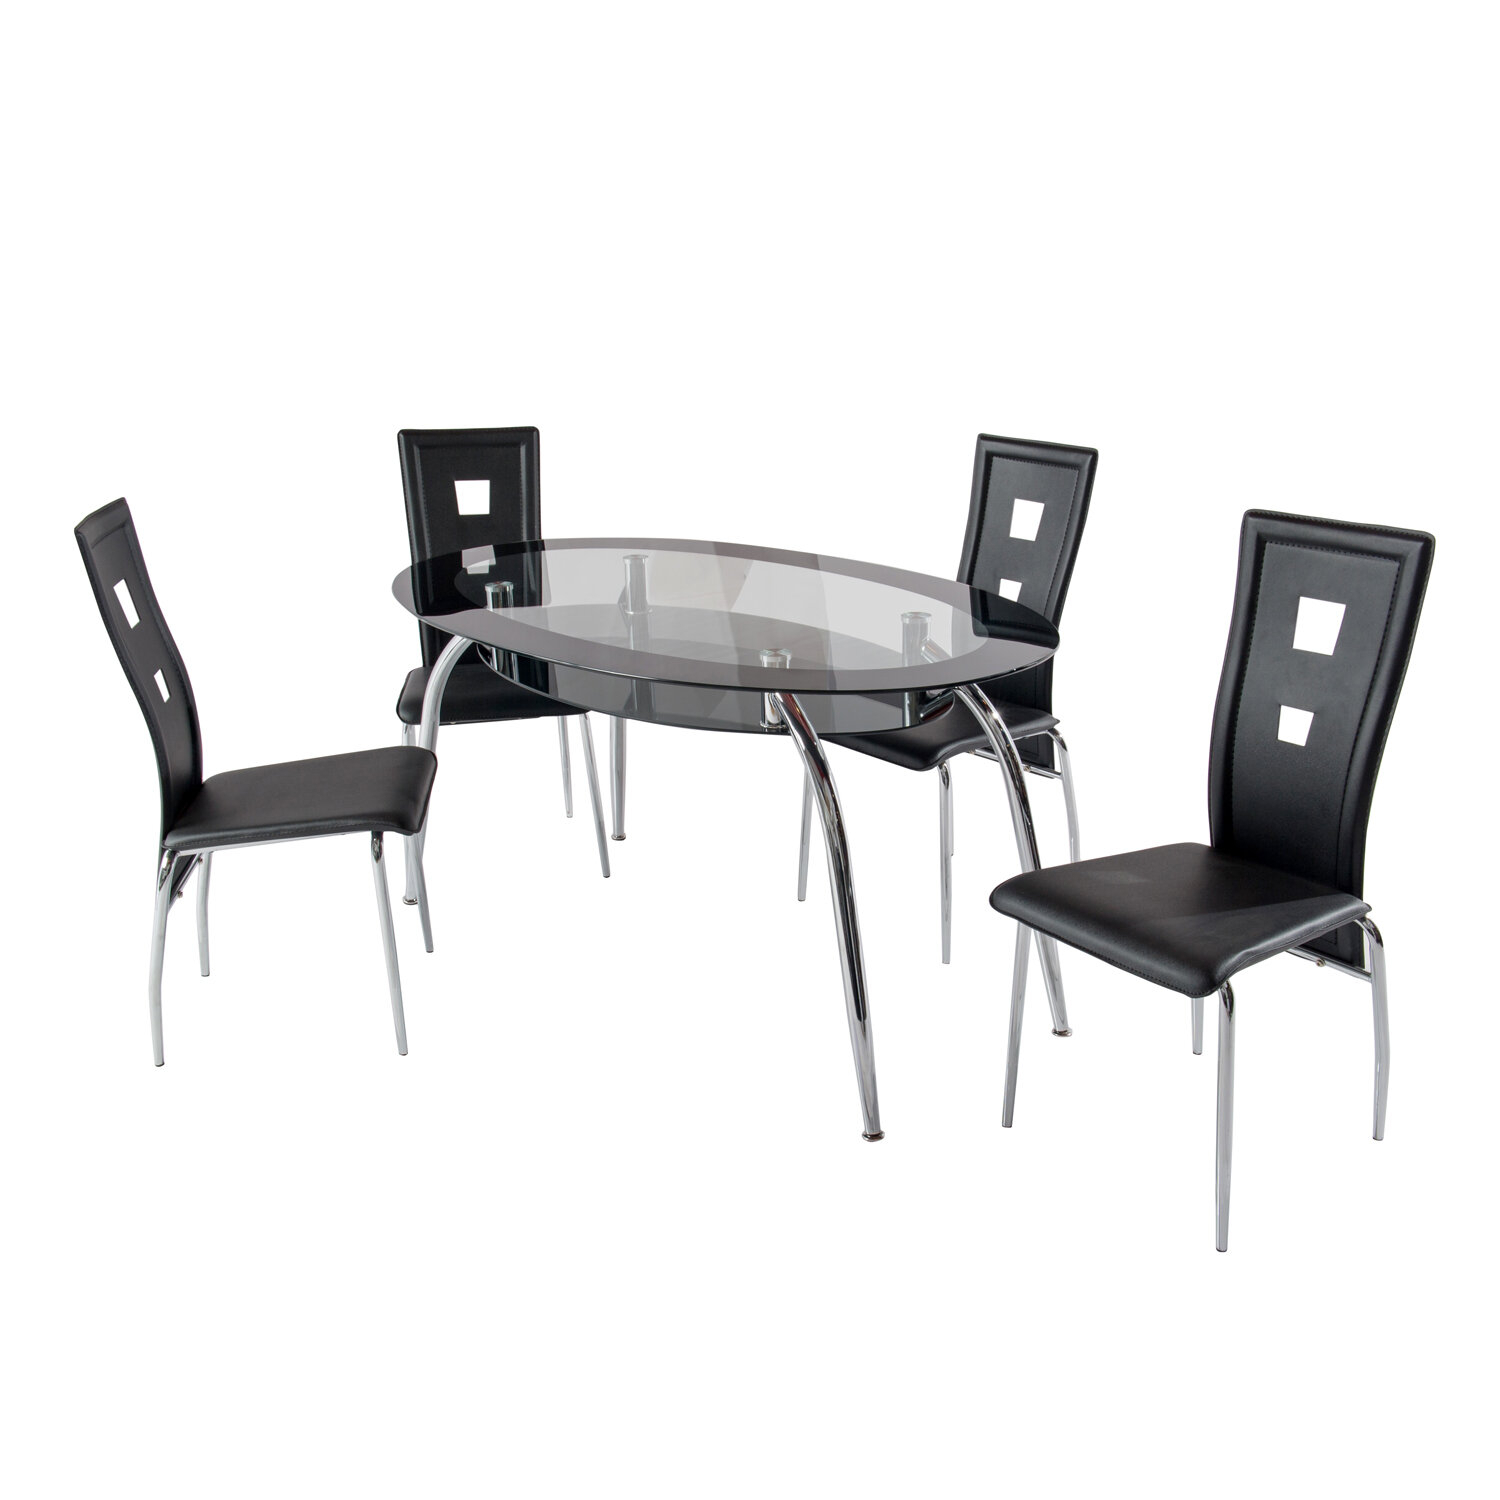 Brookview 5 Piece Dining Set Intended For Newest Linette 5 Piece Dining Table Sets (Image 4 of 20)